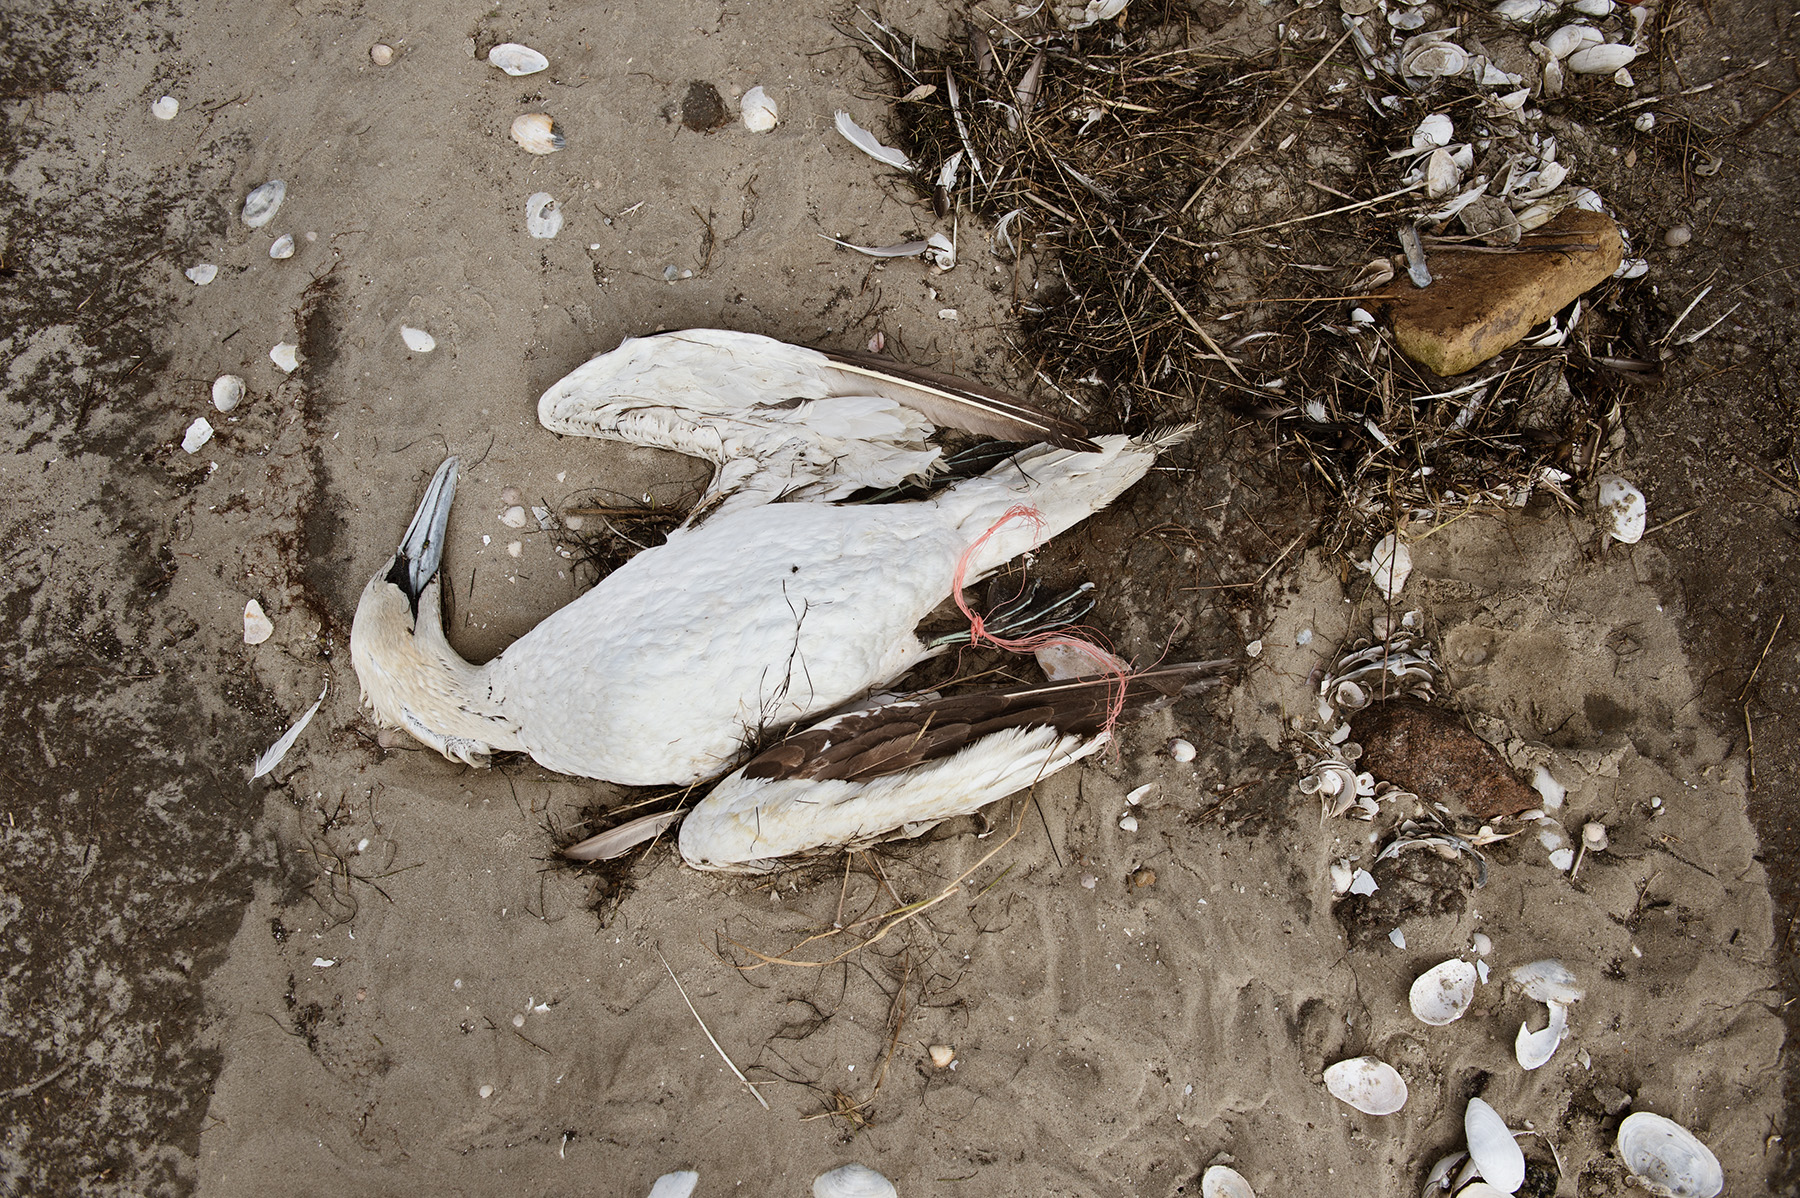 Mareike Timm | Photo Journalist - All dead birds that are washed ashore are noted and provided with a red string so as not to count them again. In her note book Anne writes Northern gannet, adult, west beach, recently dead.